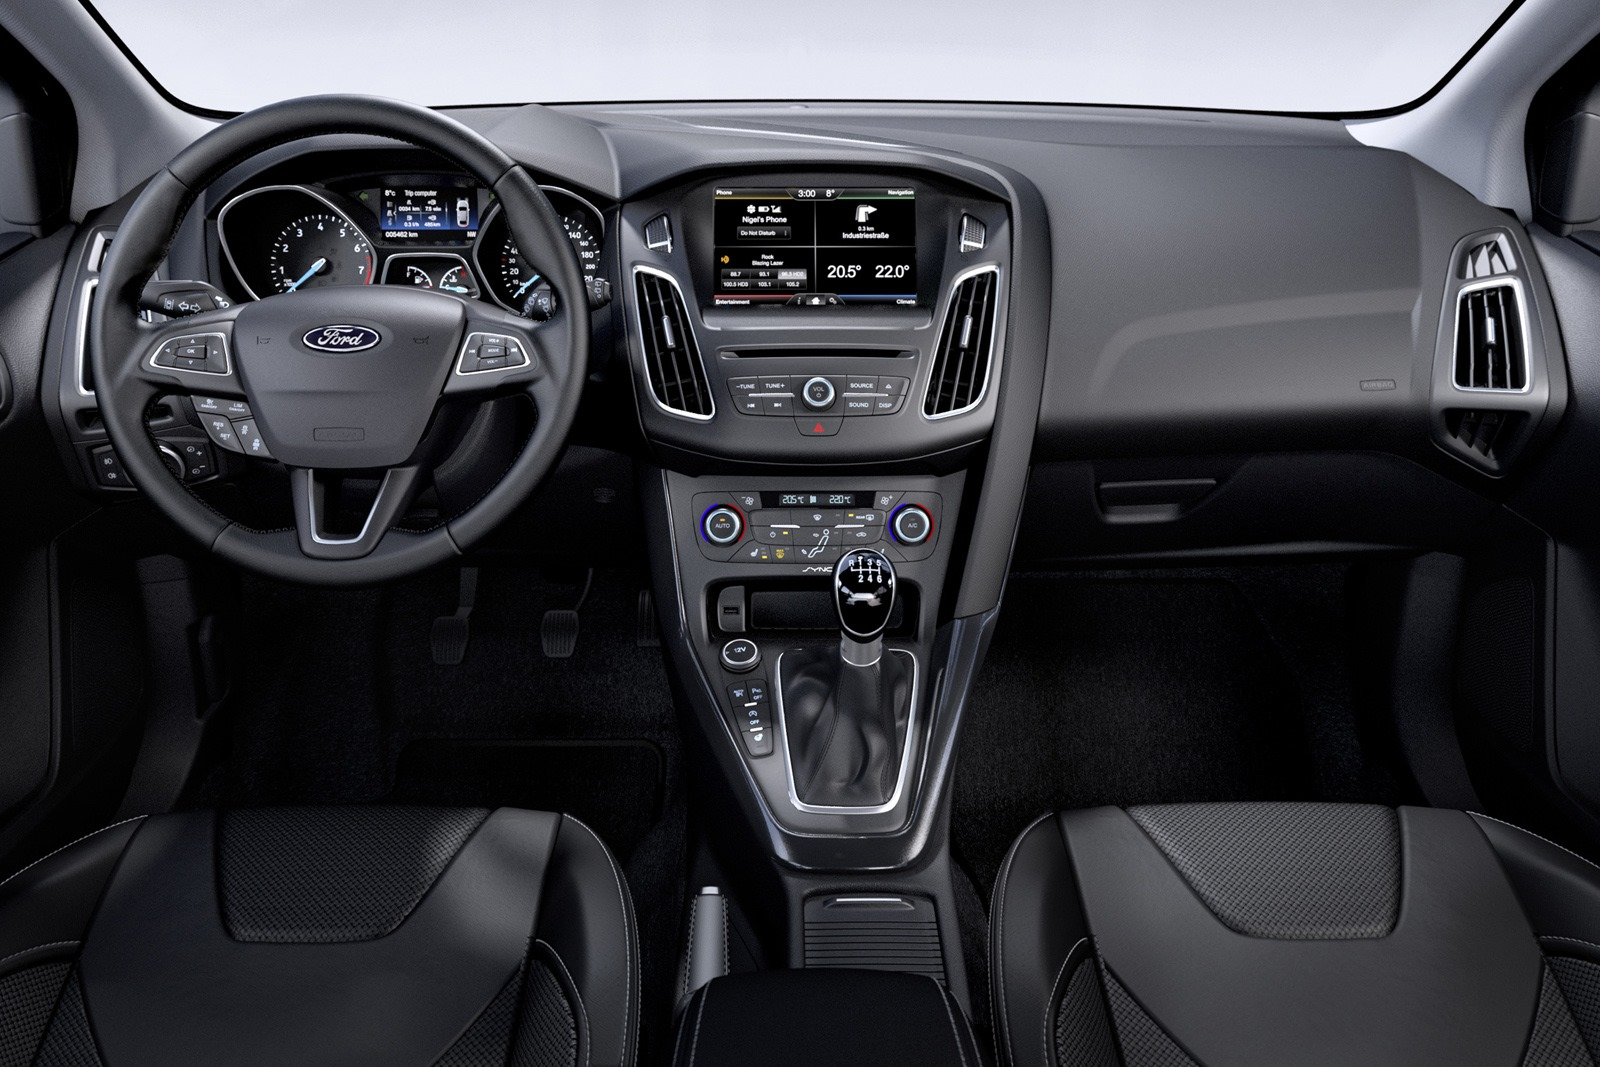 adorable-desig-of-the-black-dash-ideas-with-black-seats-as-the-ford-focus-facelift-2015-interior-ideas